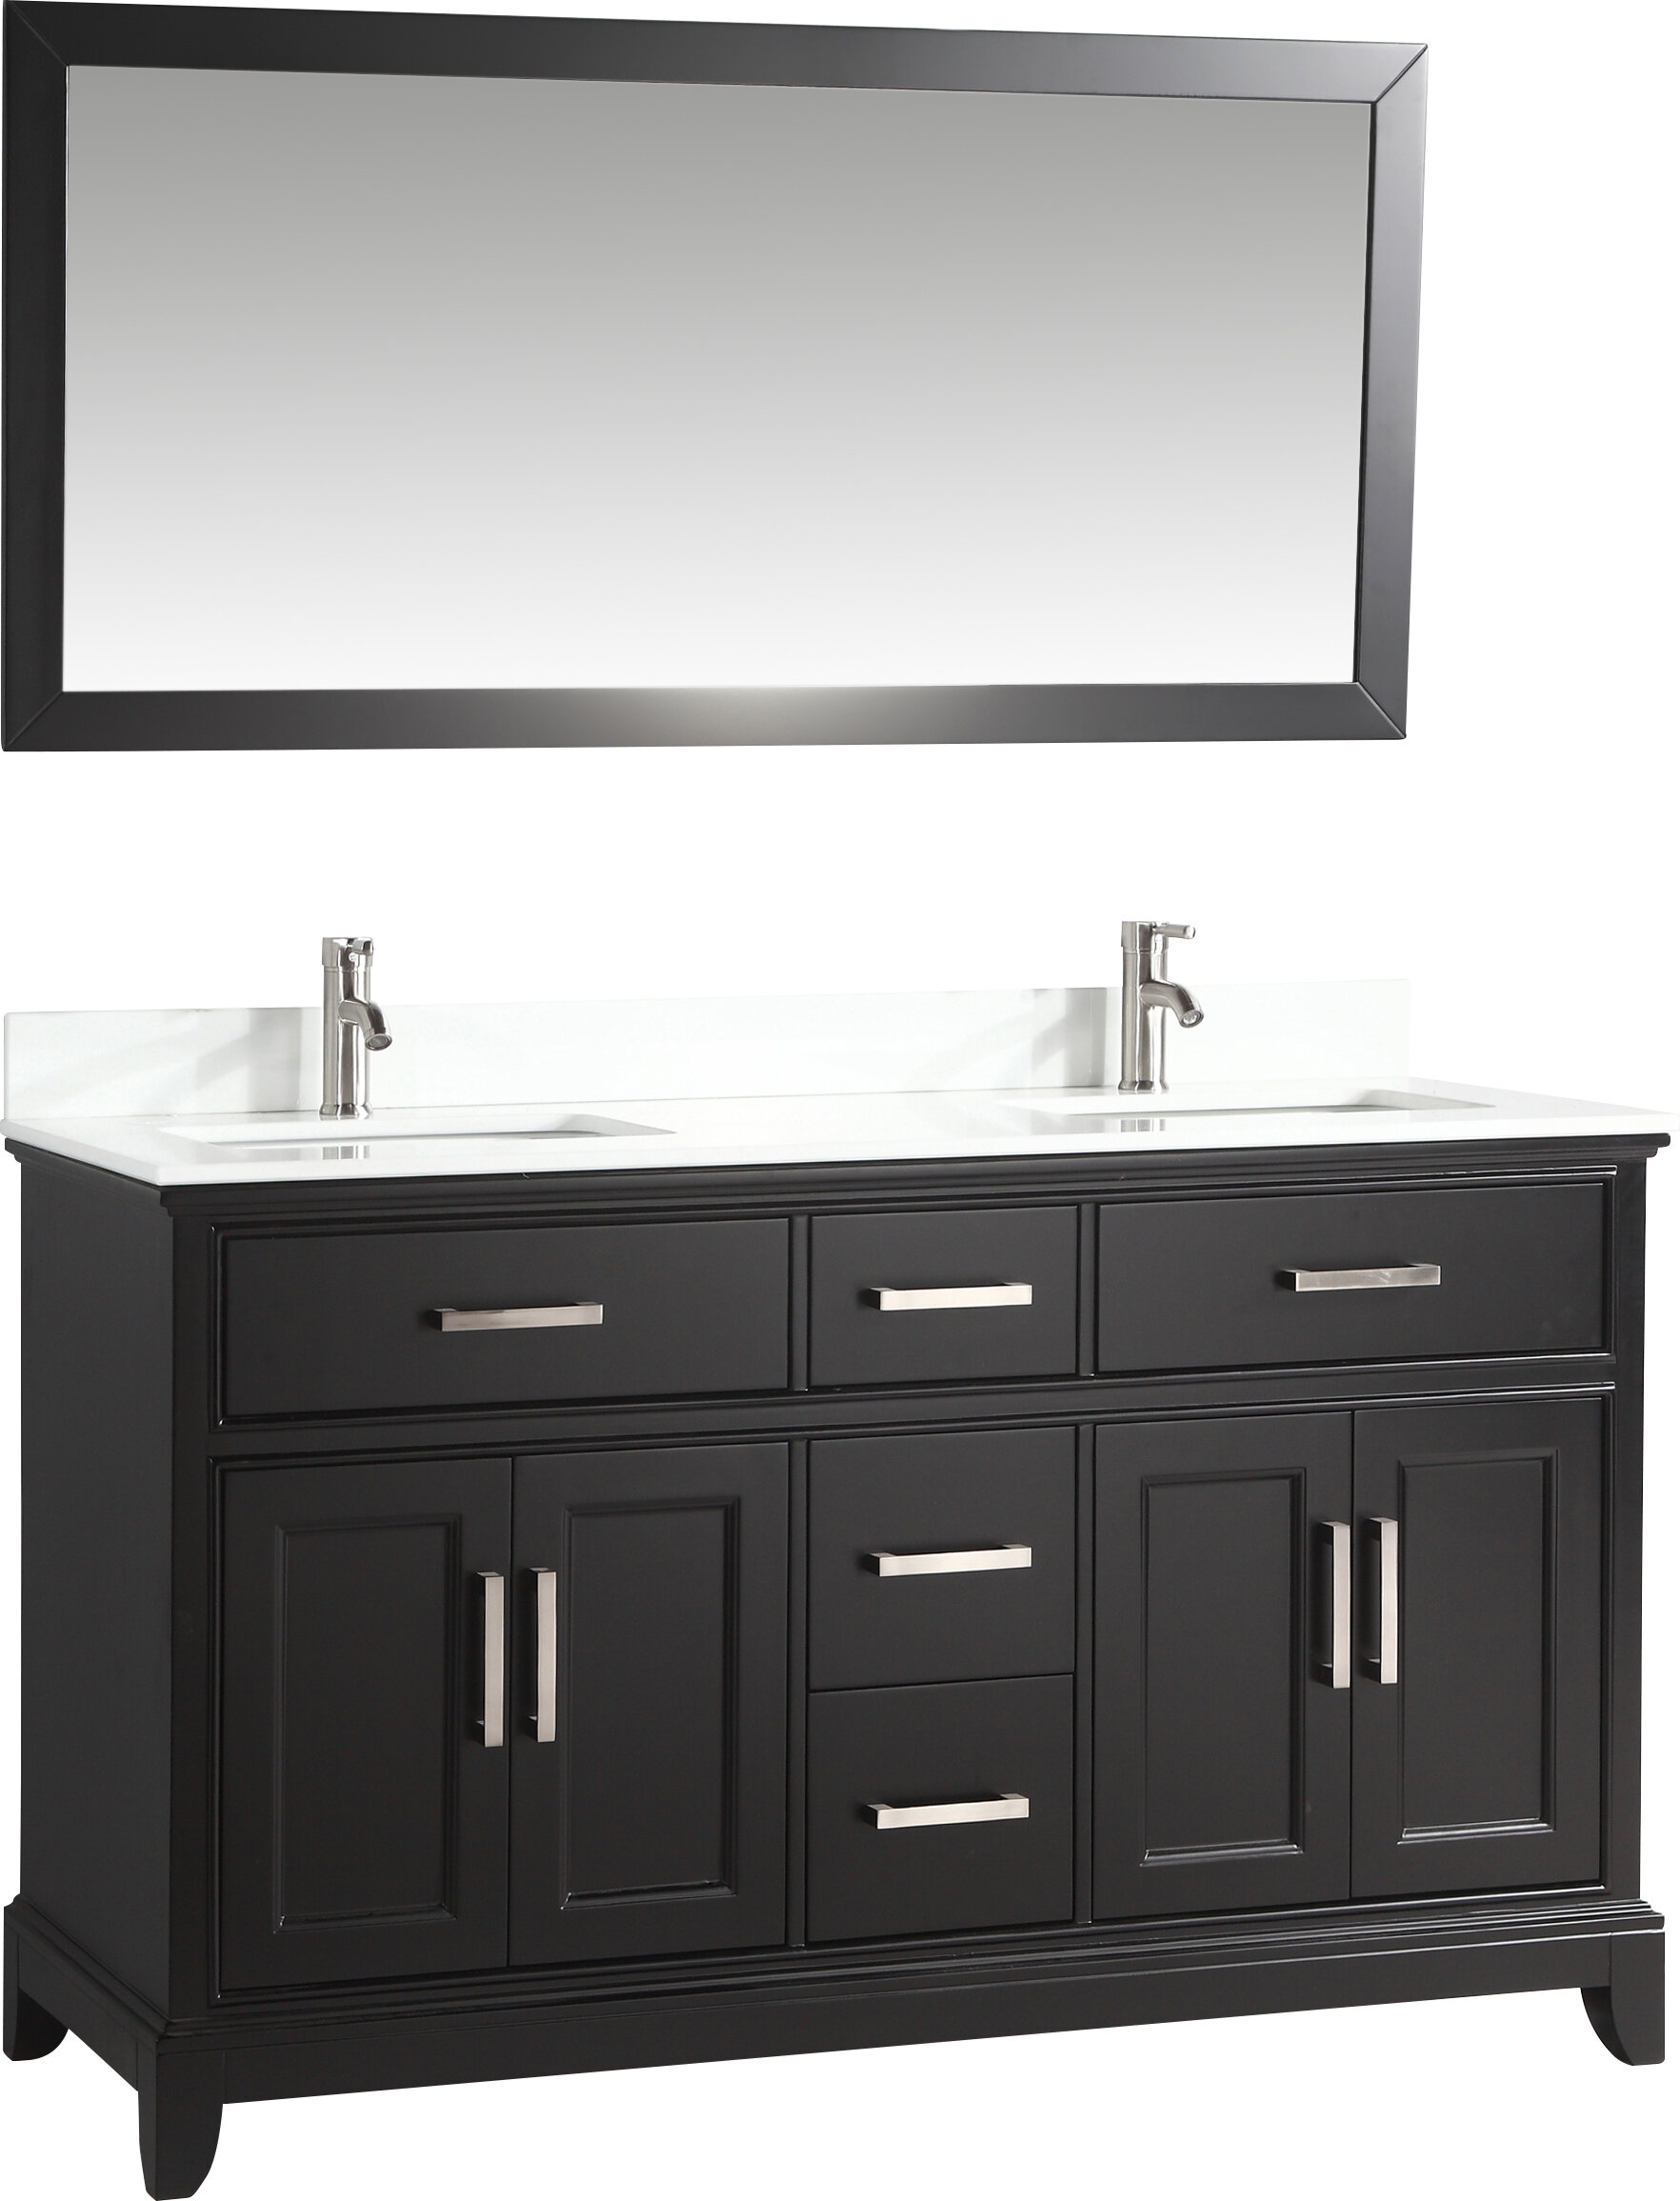 Blevens 60 Double Bathroom Vanity Set With Mirror Reviews Joss